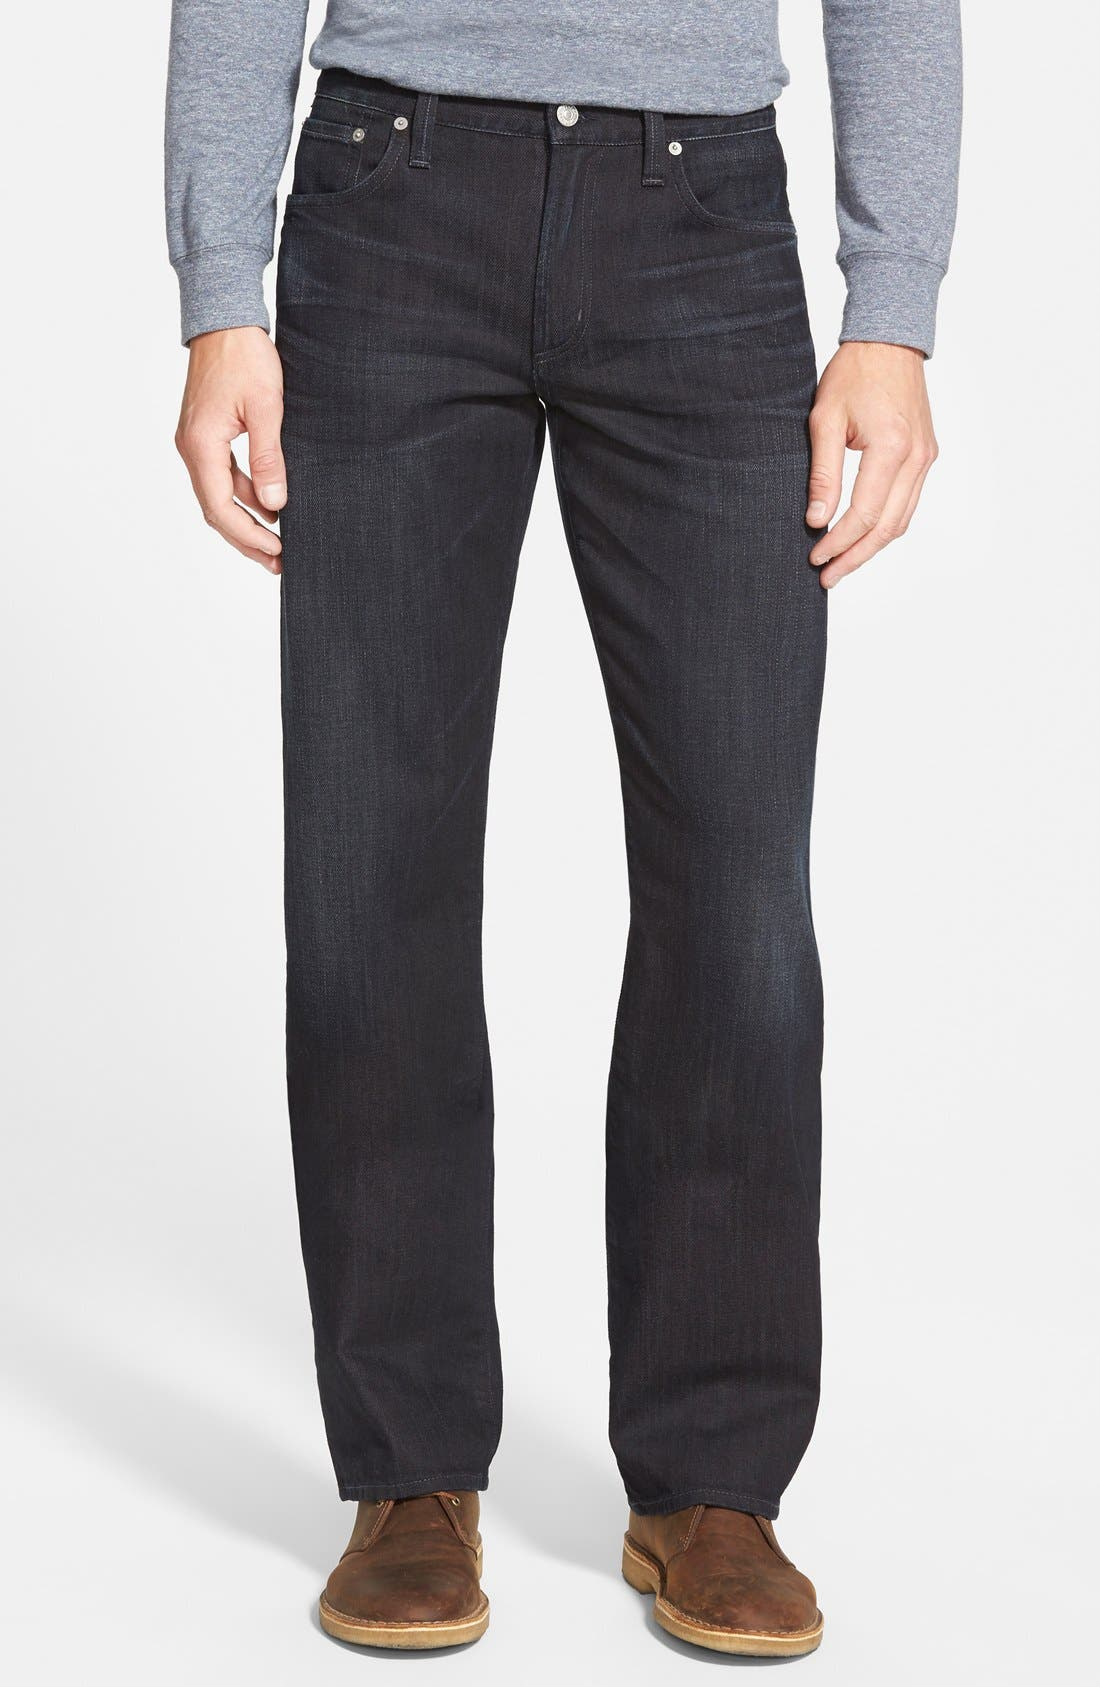 'Evans' Relaxed Fit Jeans,                             Main thumbnail 1, color,                             MACON